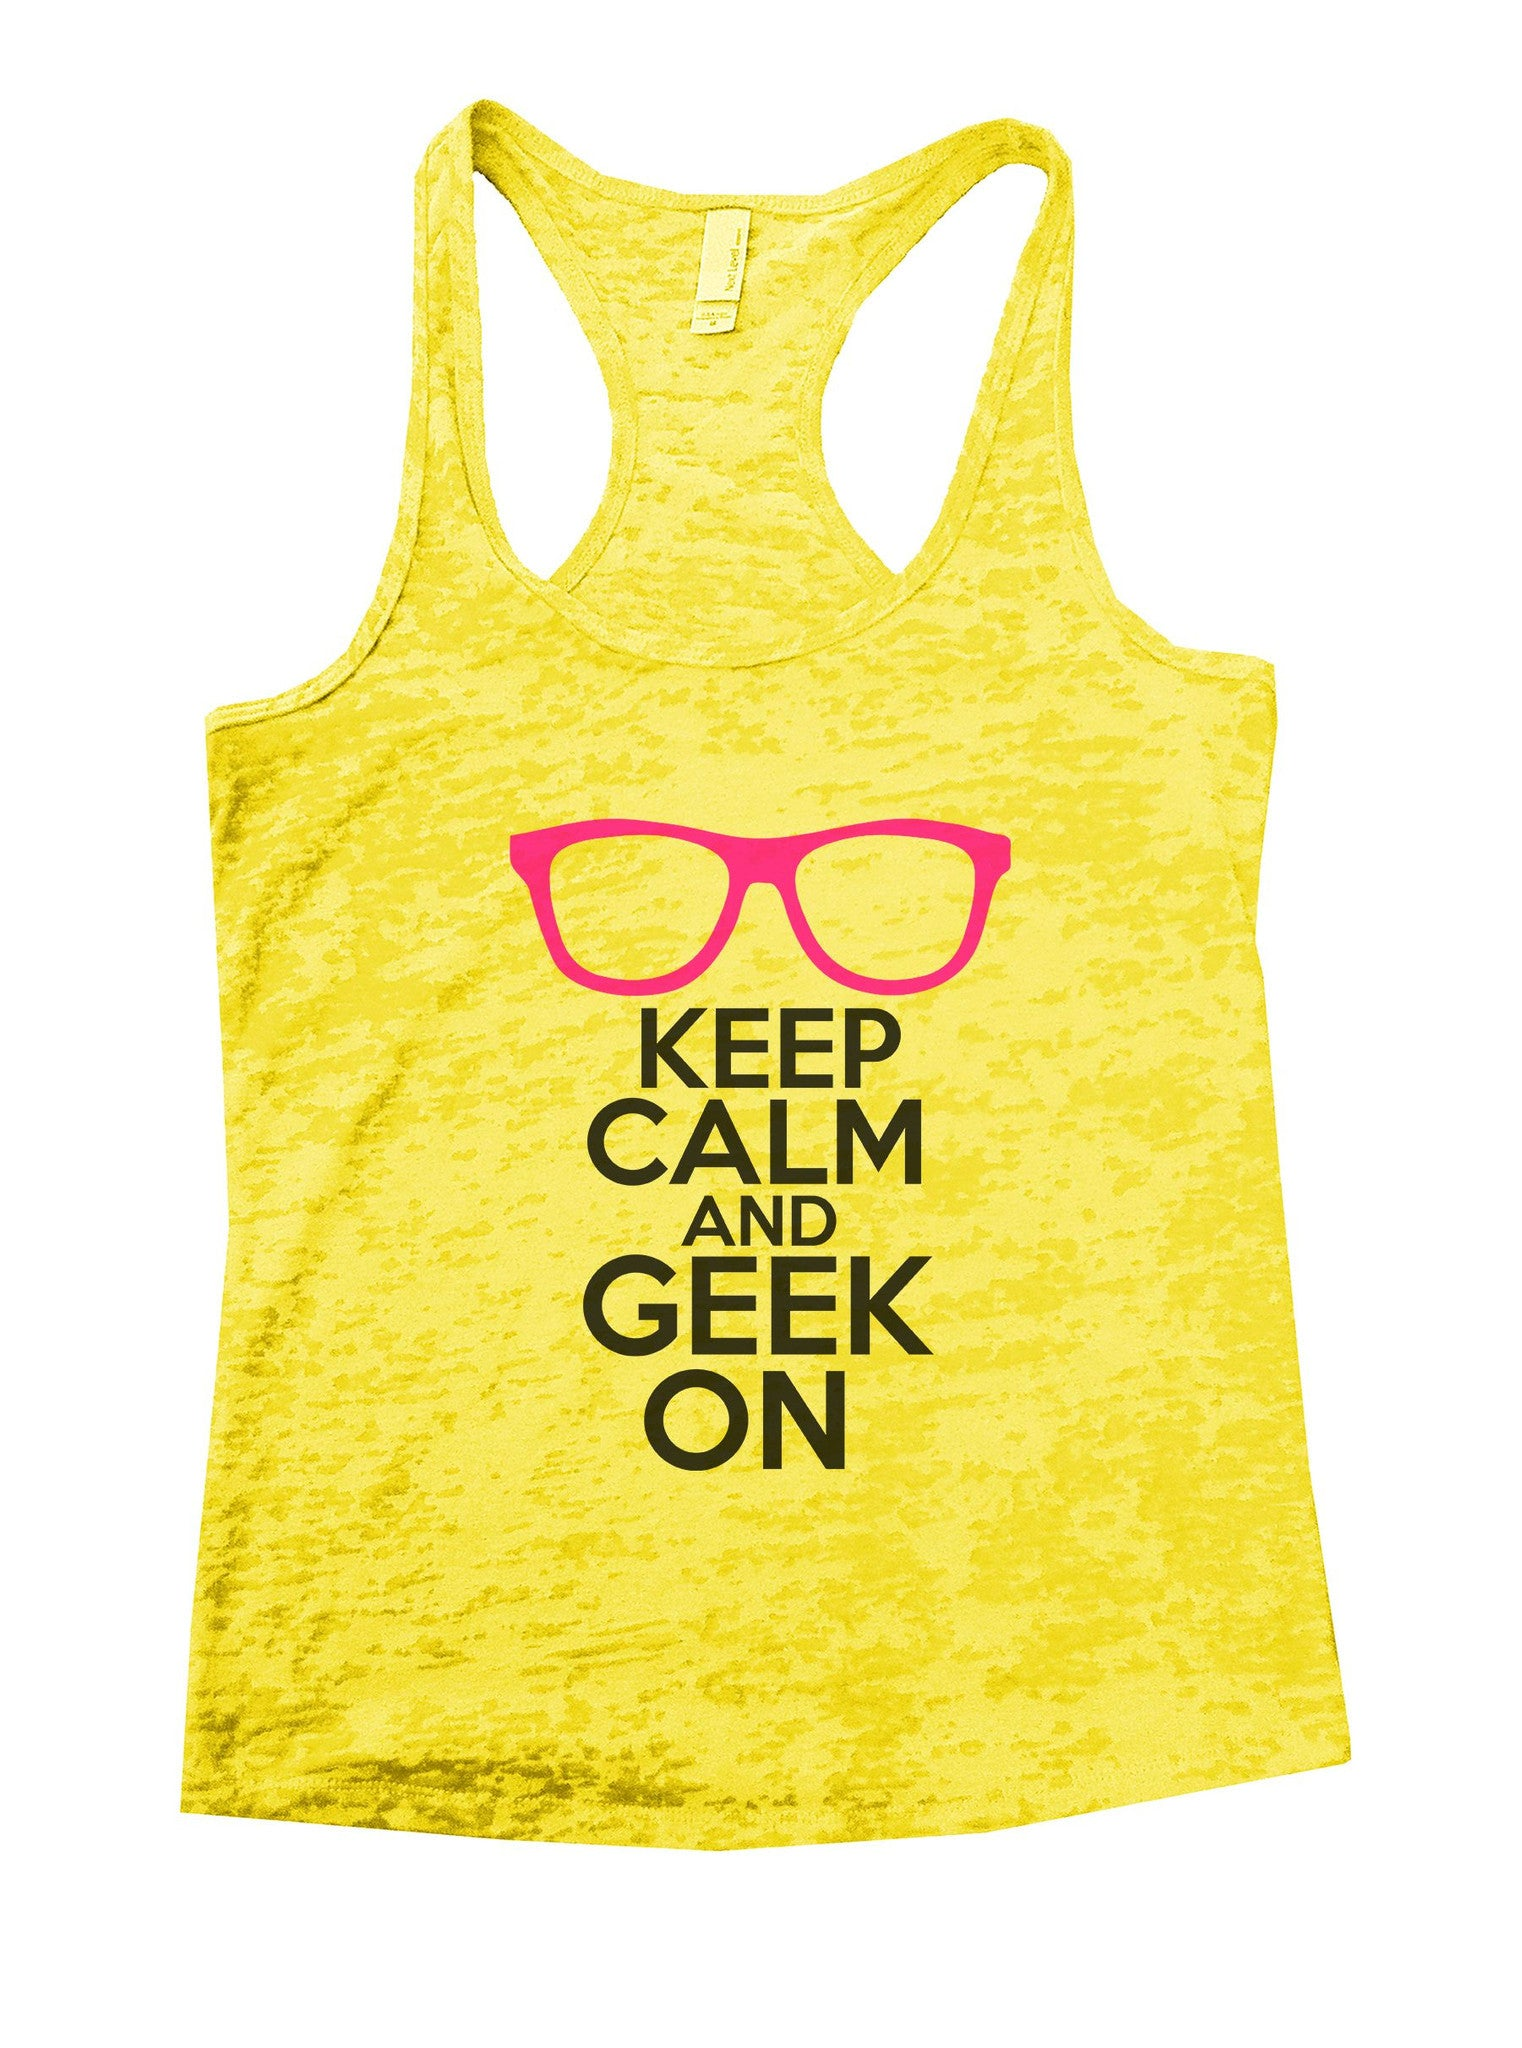 Keep Calm And Geek On Burnout Tank Top By BurnoutTankTops.com - 1121 - Funny Shirts Tank Tops Burnouts and Triblends  - 7